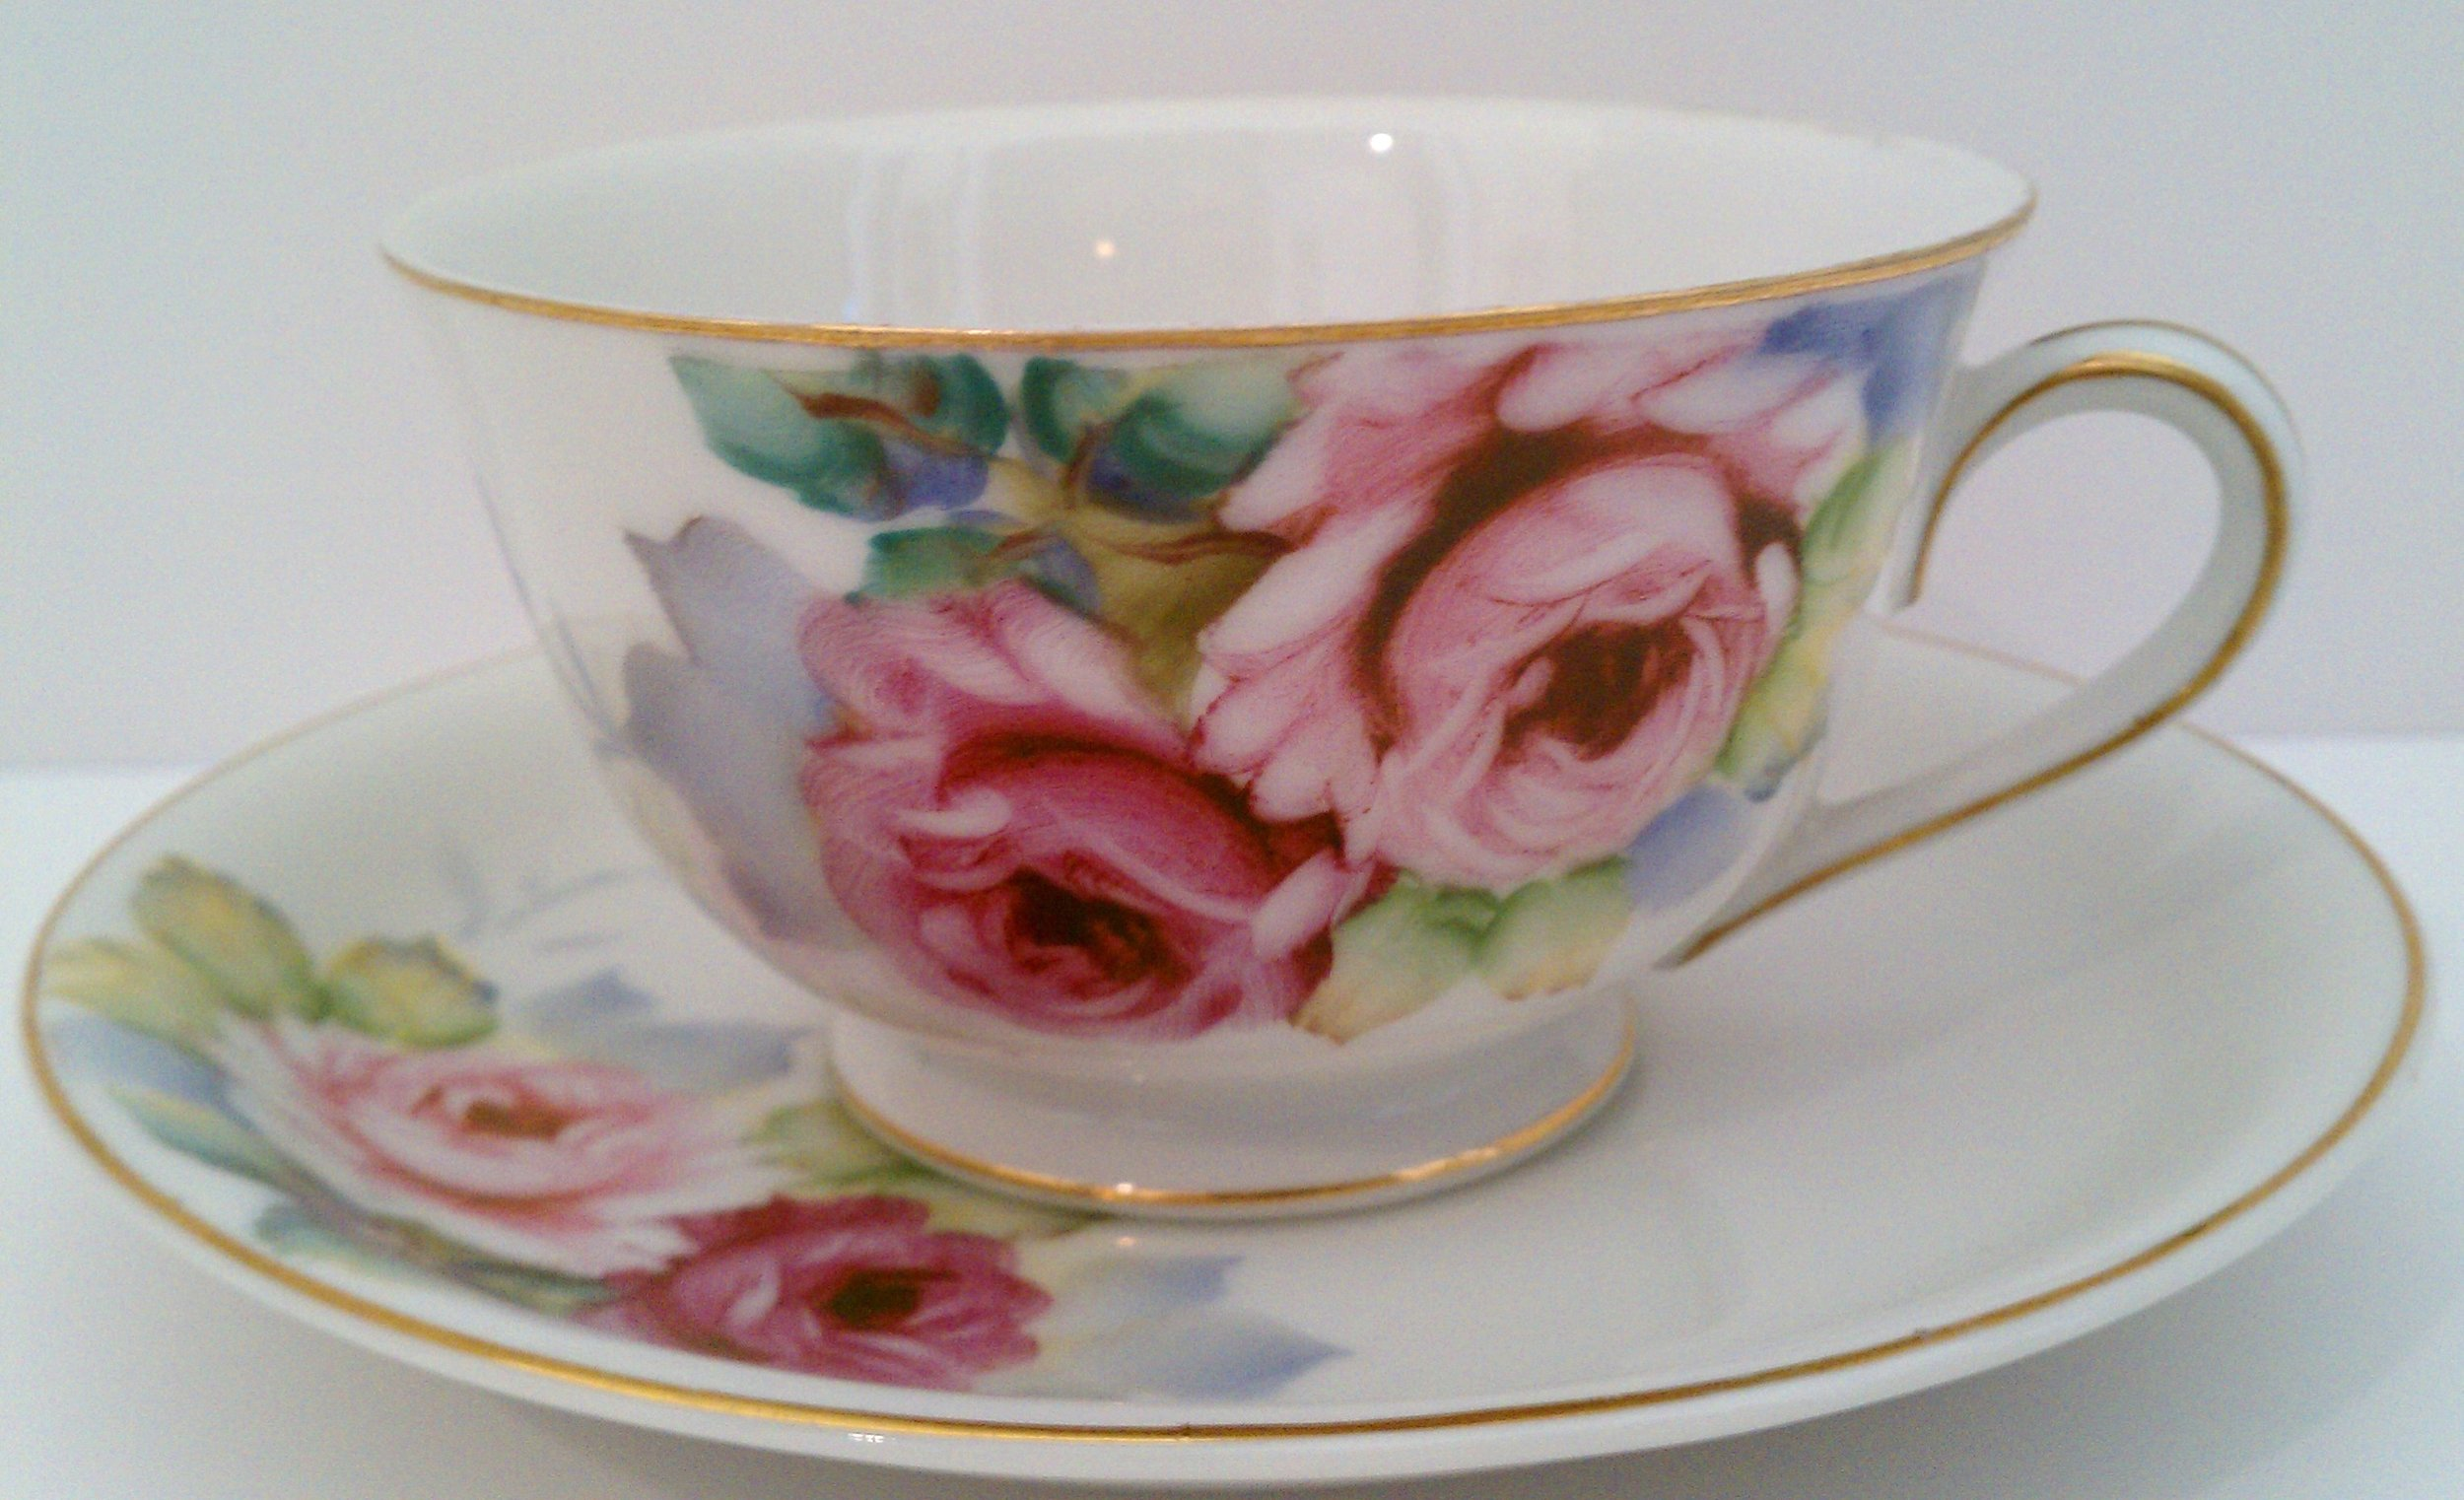 Pink roses cup and saucer by Noritake